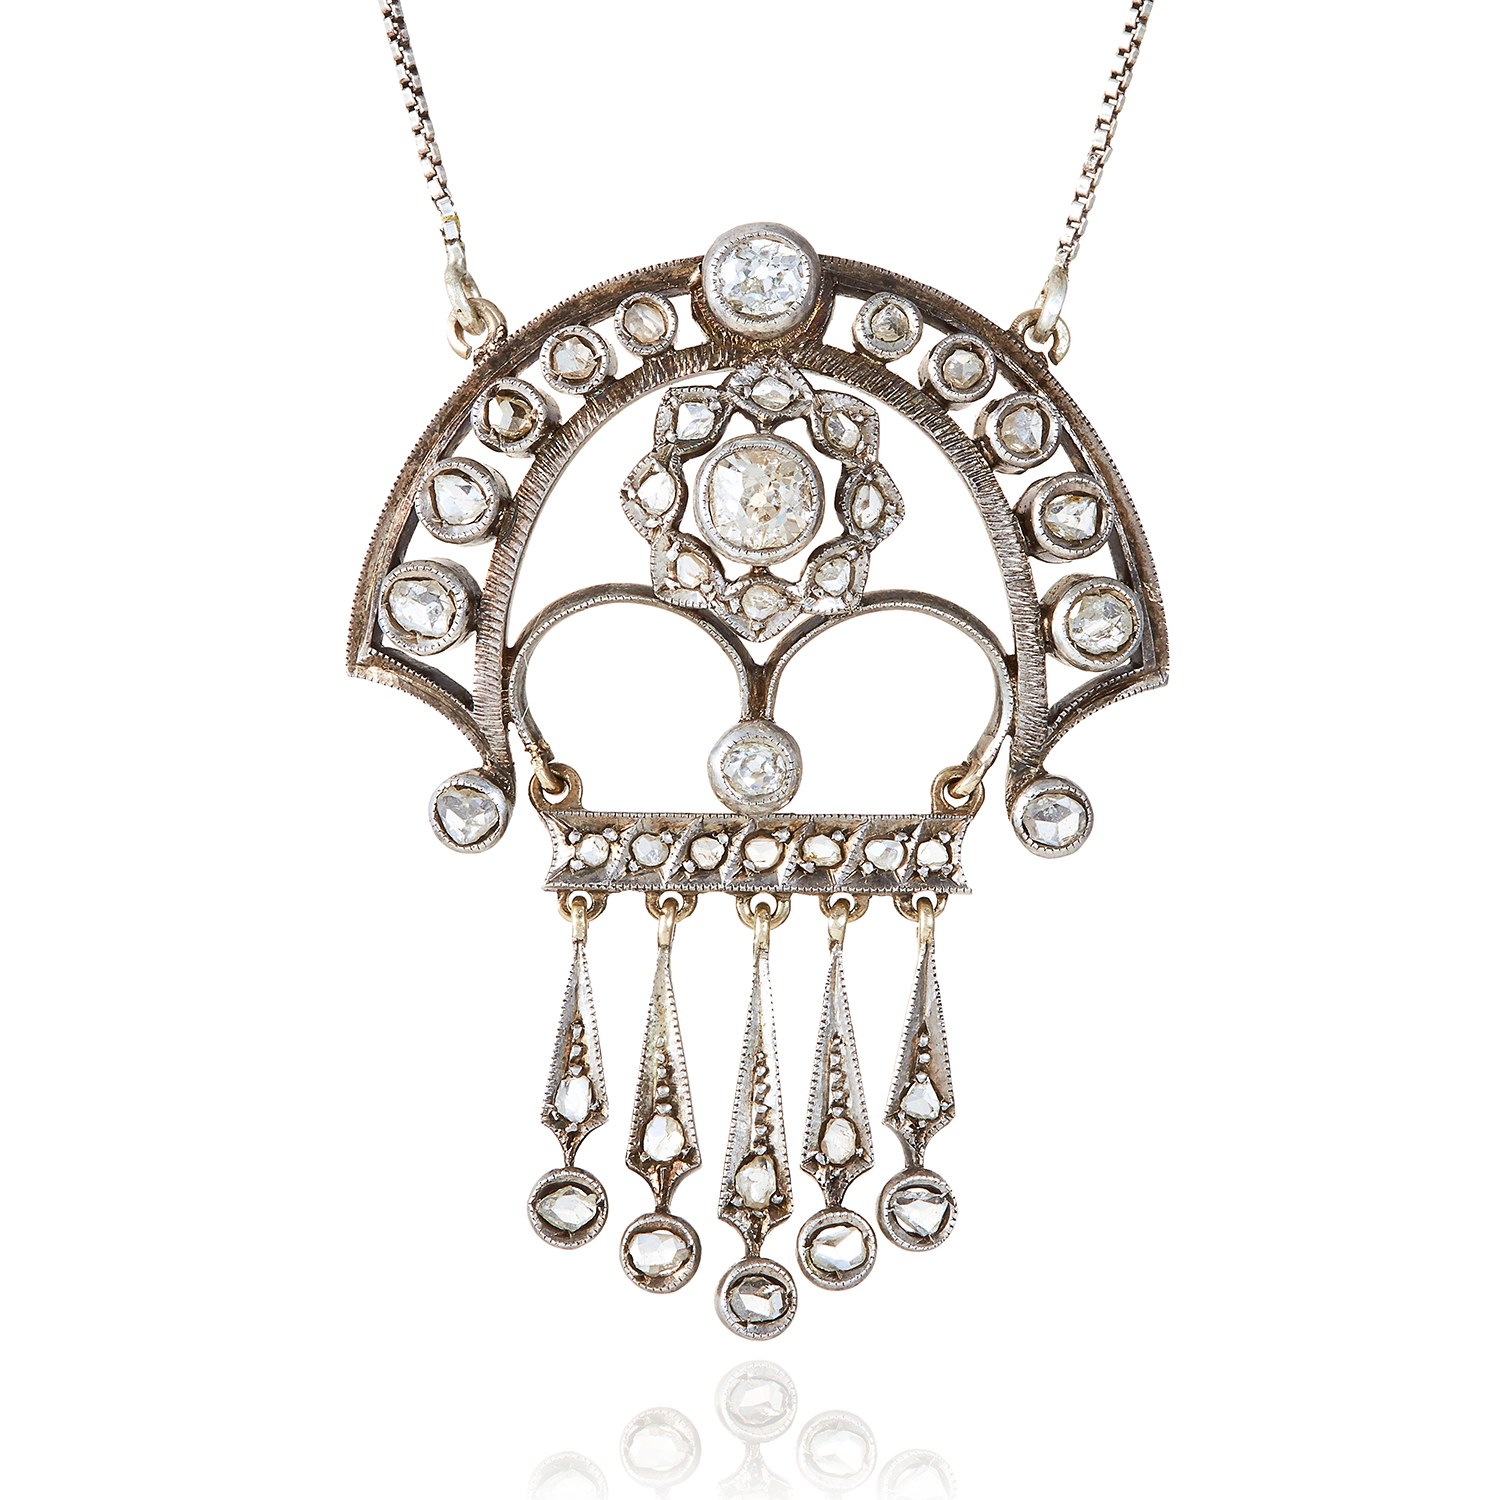 Los 306 - AN ANTIQUE DIAMOND PENDANT NECKLACE, EARLY 20TH CENTURY jewelled with round and rose cut diamonds,